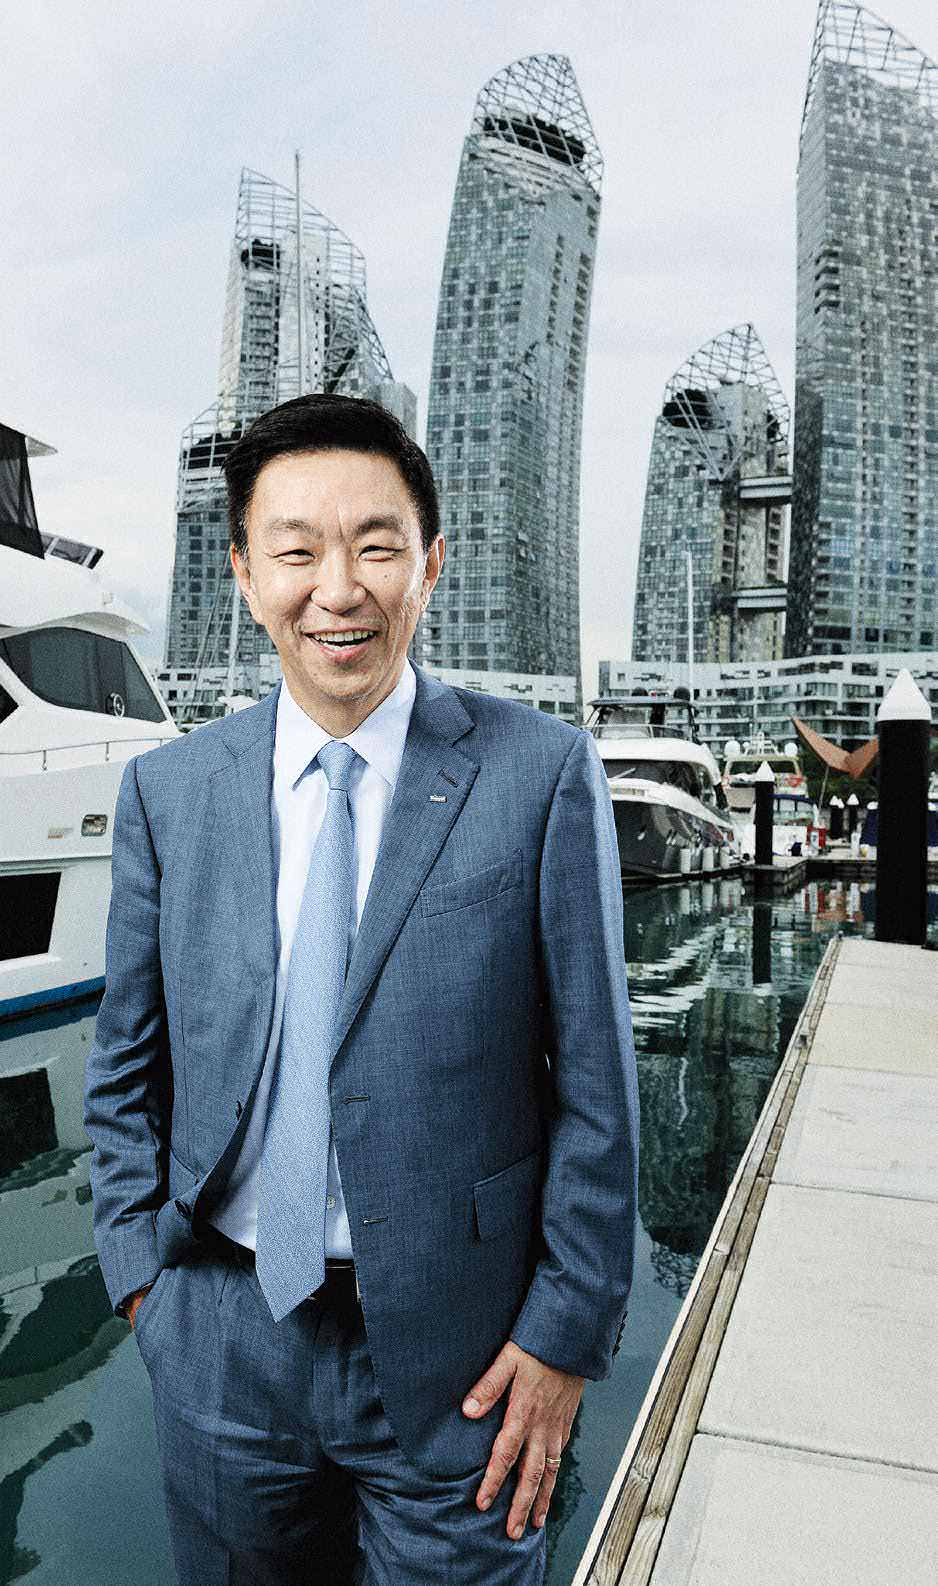 If Smart Cities Are The Future, Singapore's Keppel Is Contributing Plenty Of IQ